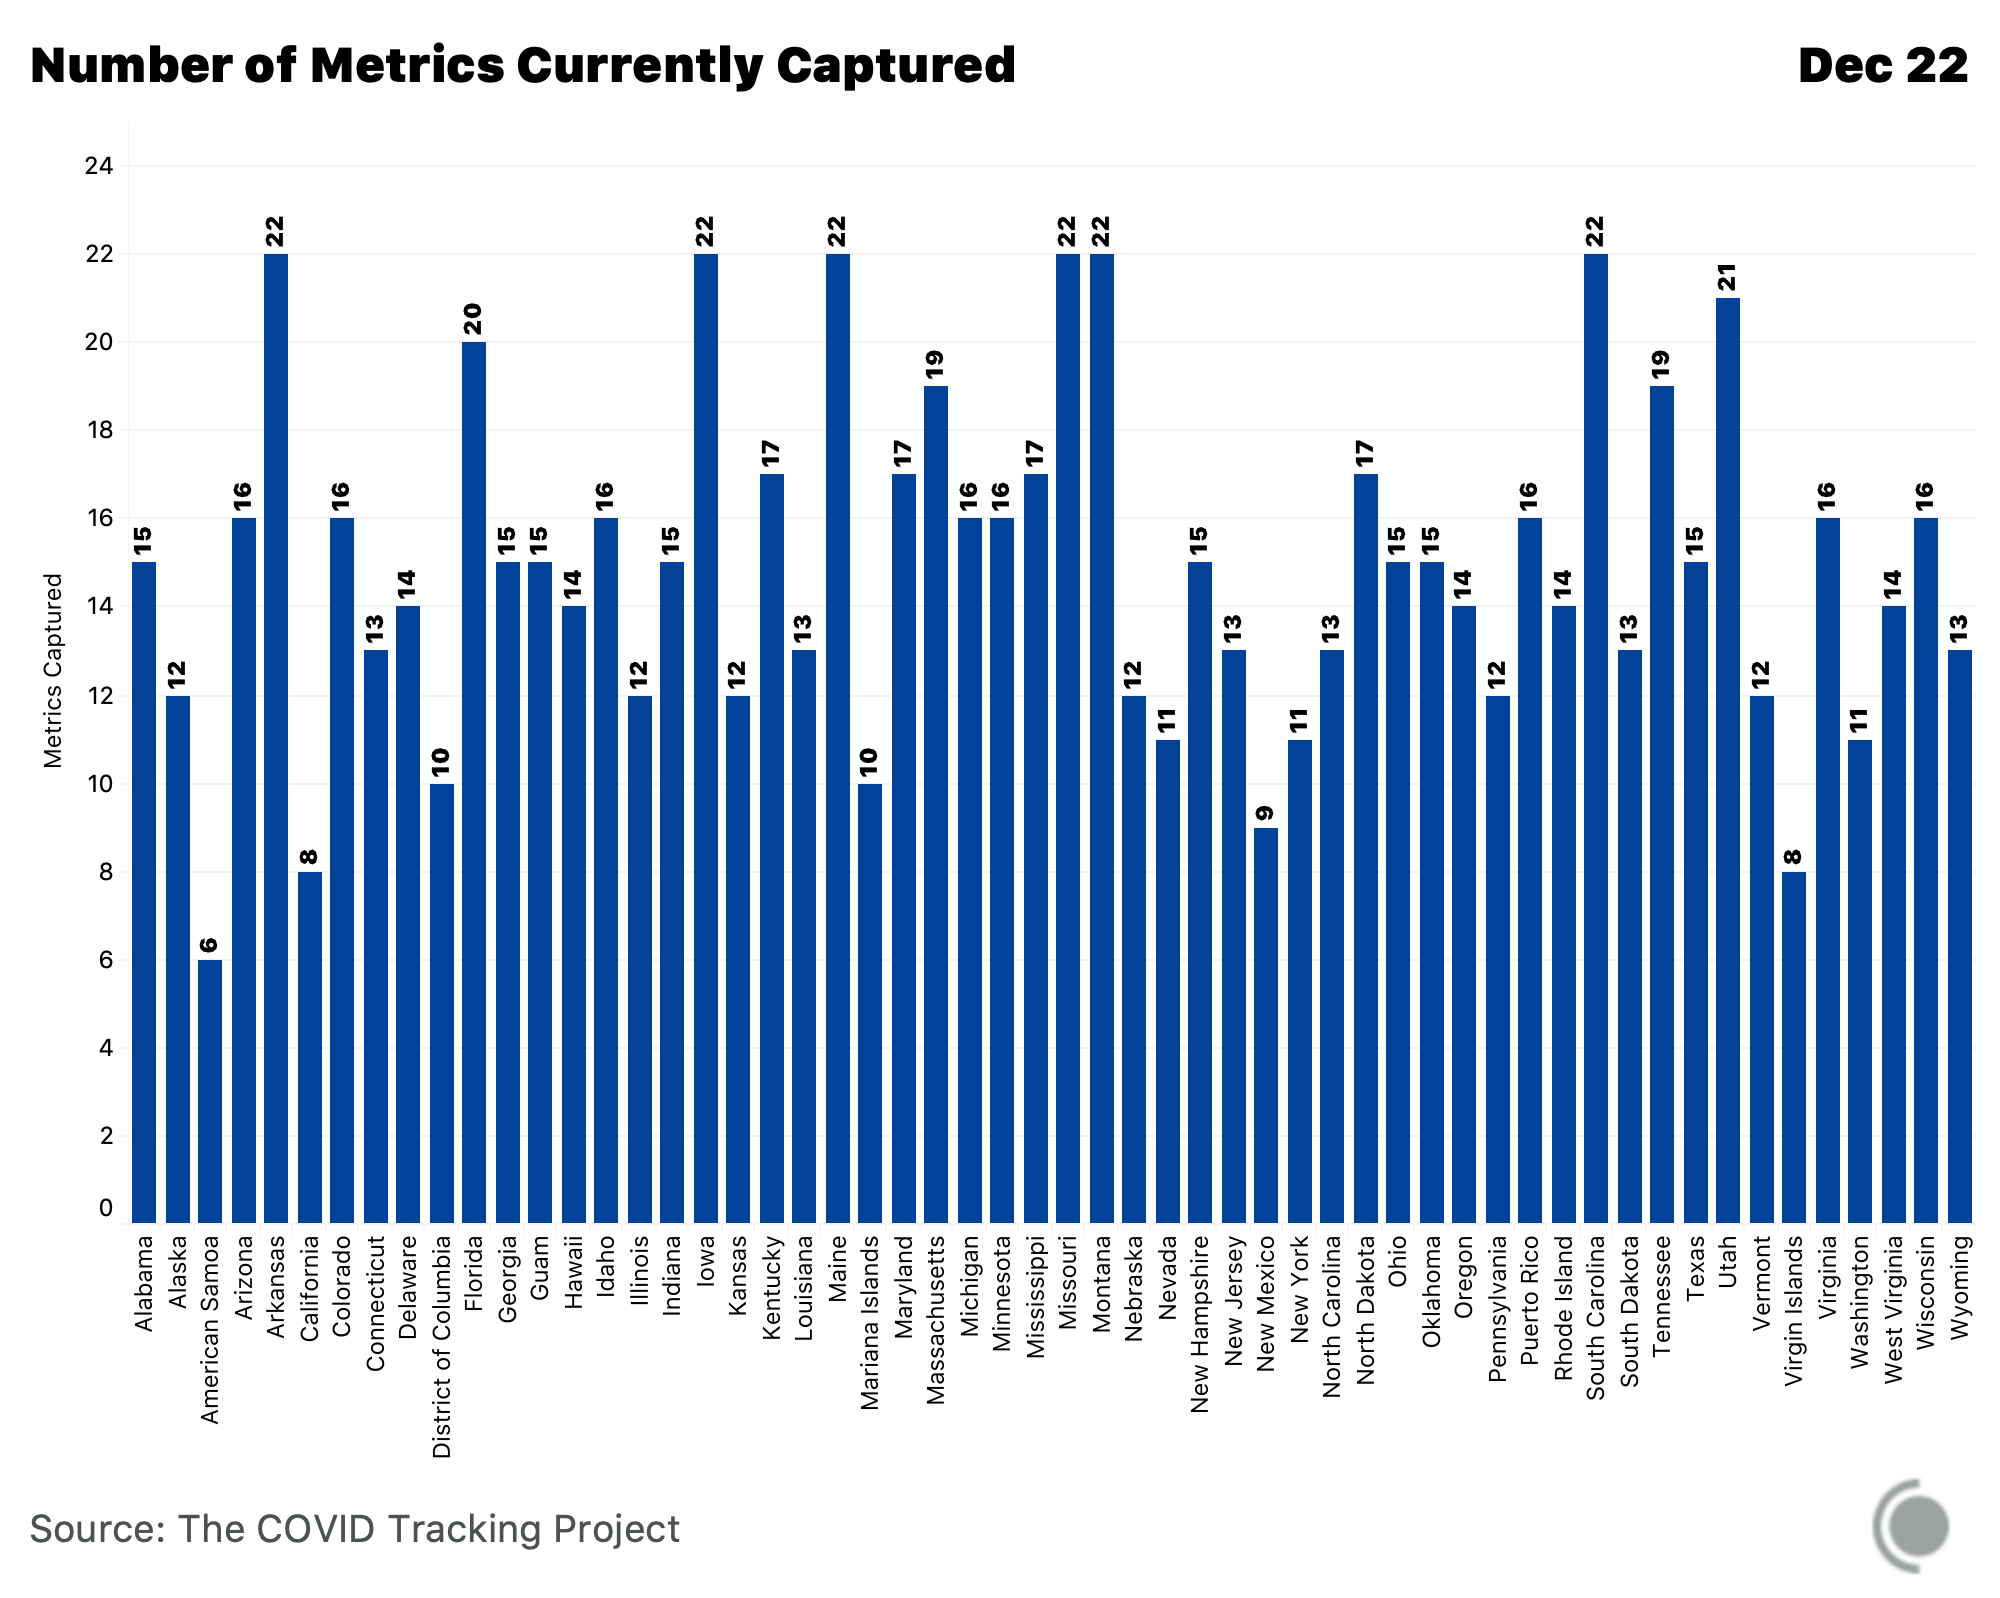 A bar chart displaying the number of COVID-19 metrics captured by The COVID Tracking Project. Arkansas is the highest number at 22 and American Samoa is the lowest number at 6.